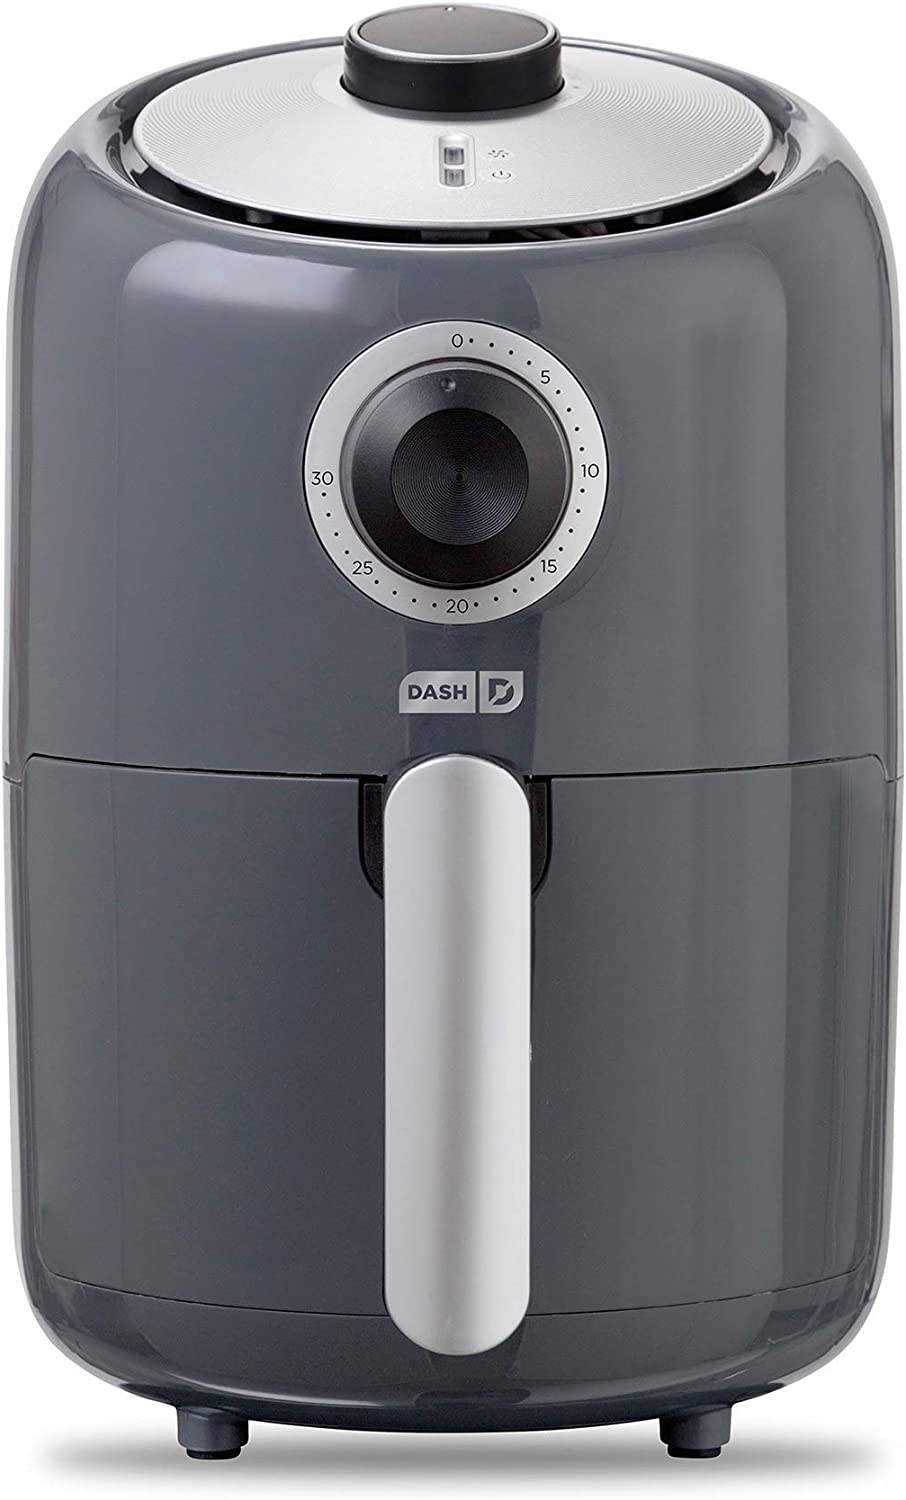 Dash Compact Air Fryer 1.2 L Electric Air Fryer Oven Cooker with Temperature Control, Non Stick Fry Basket, Recipe Guide + Auto Shut off Feature - Grey (Renewed)